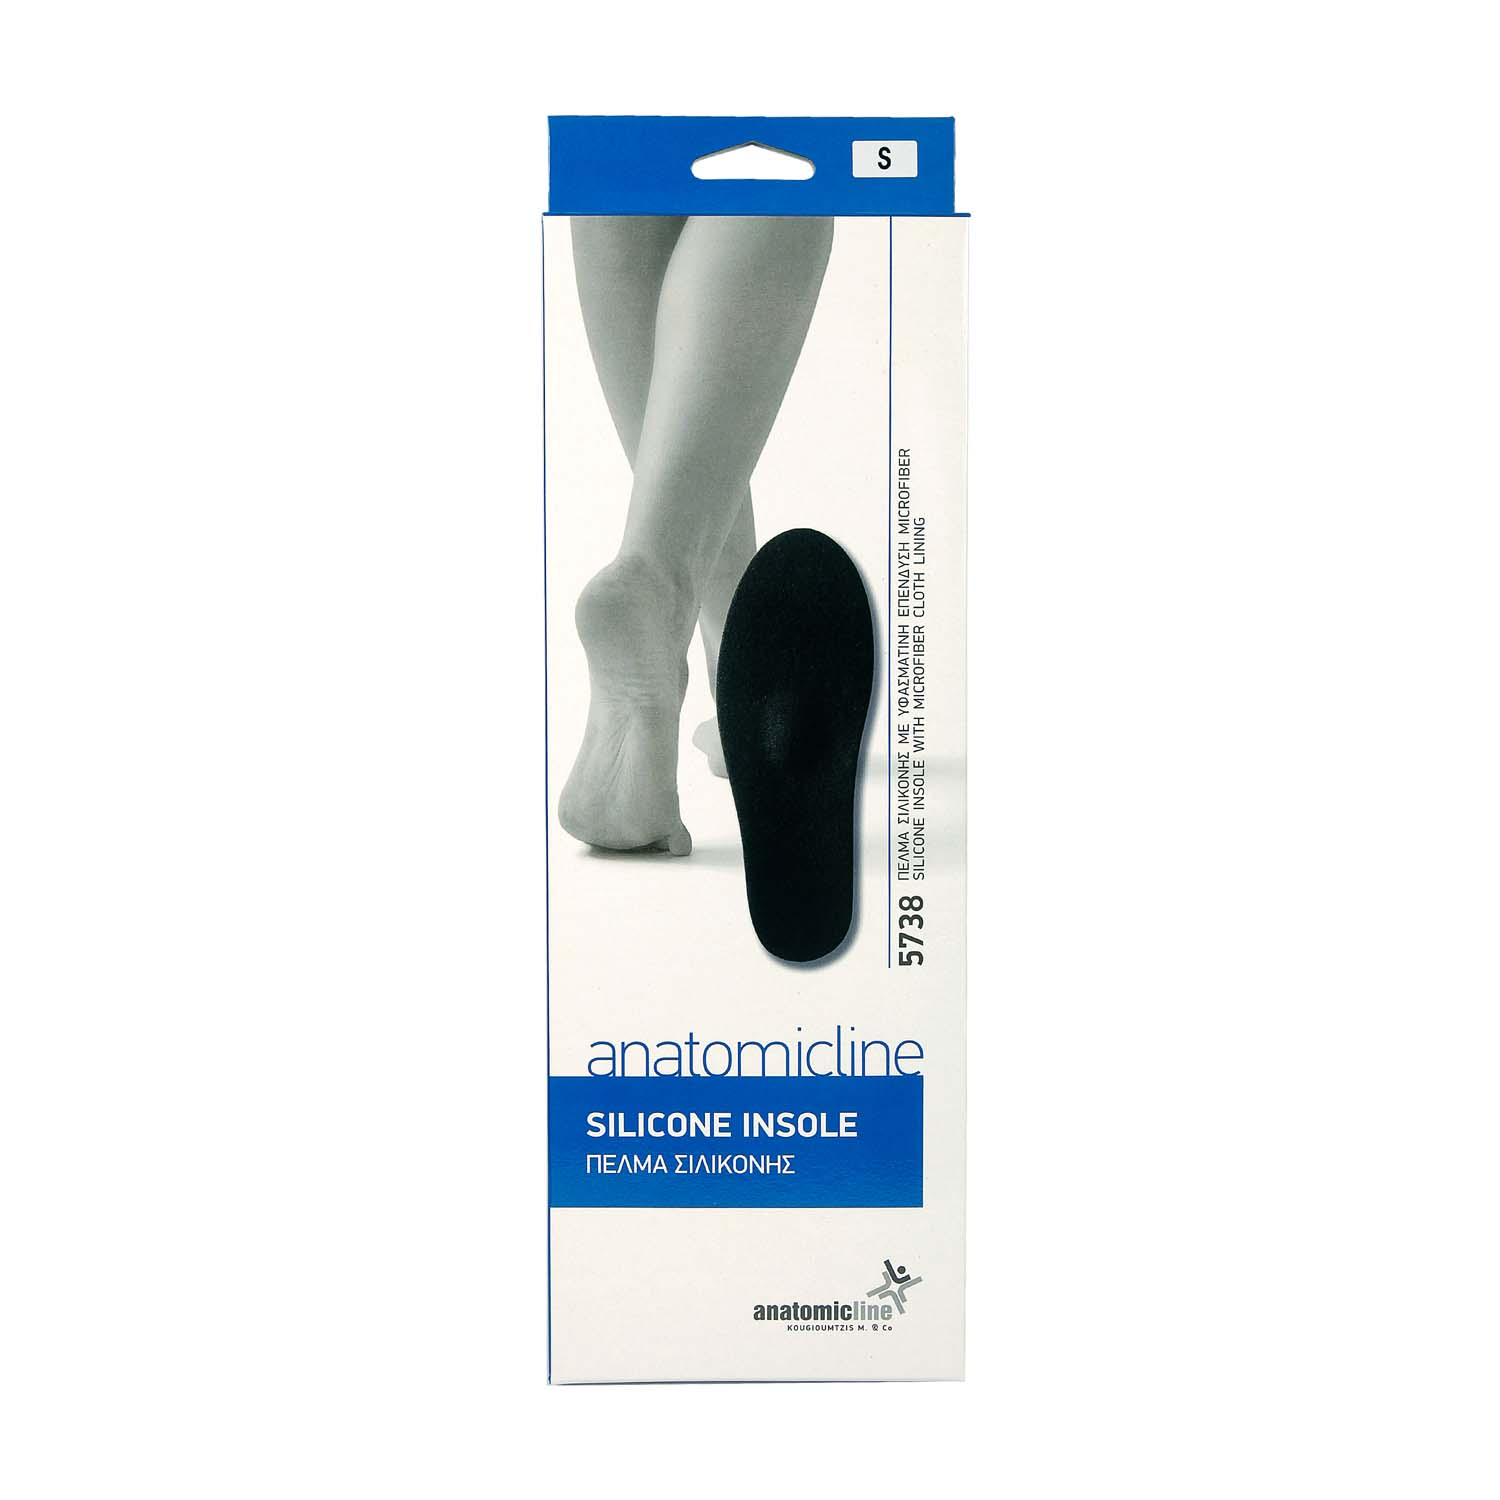 Silicone insole with microfiber cloth lining